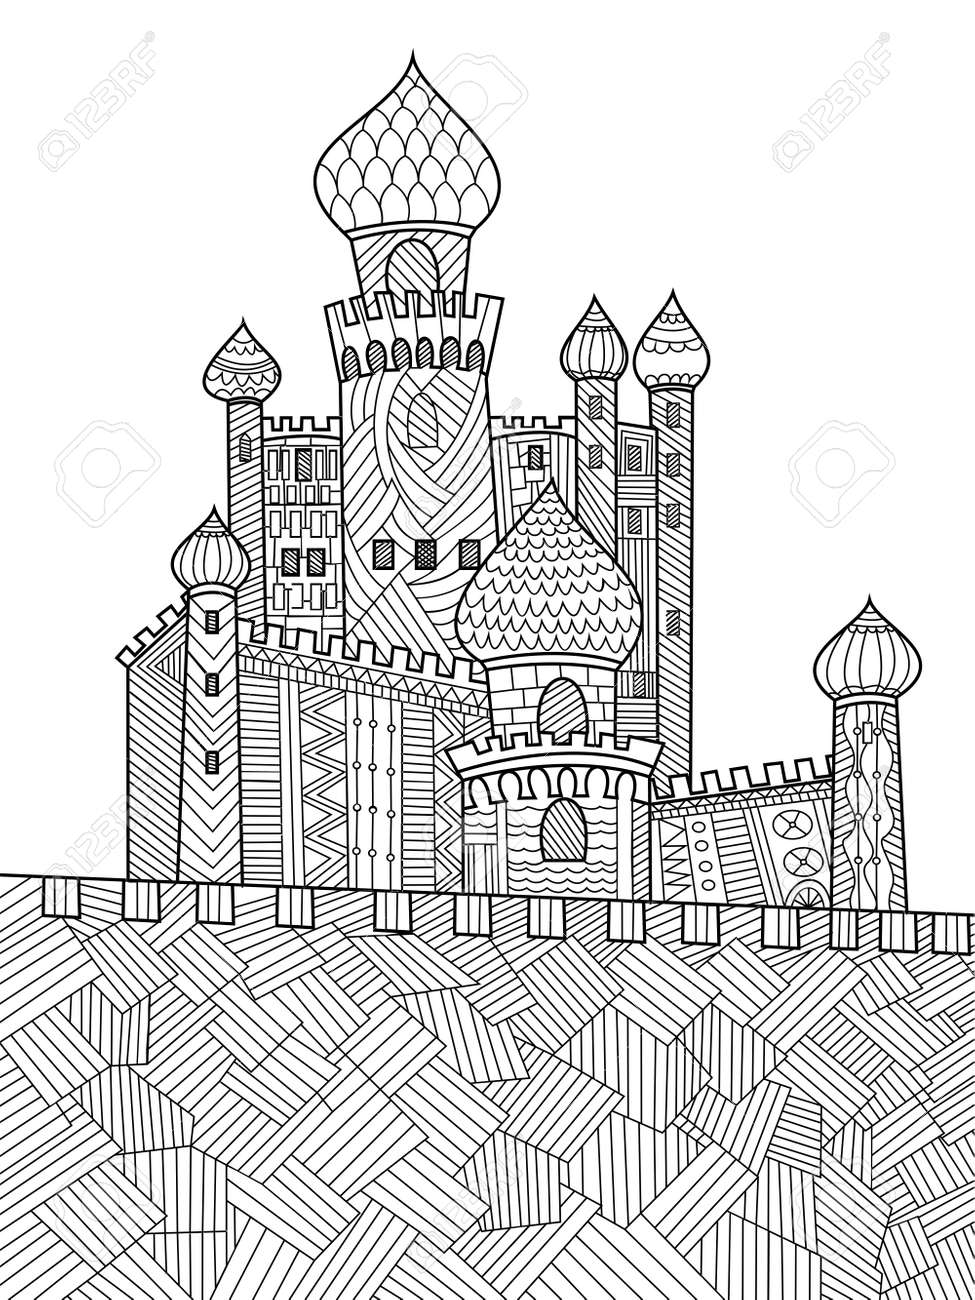 Medieval Castle Coloring Book For Adults Vector Illustration ...